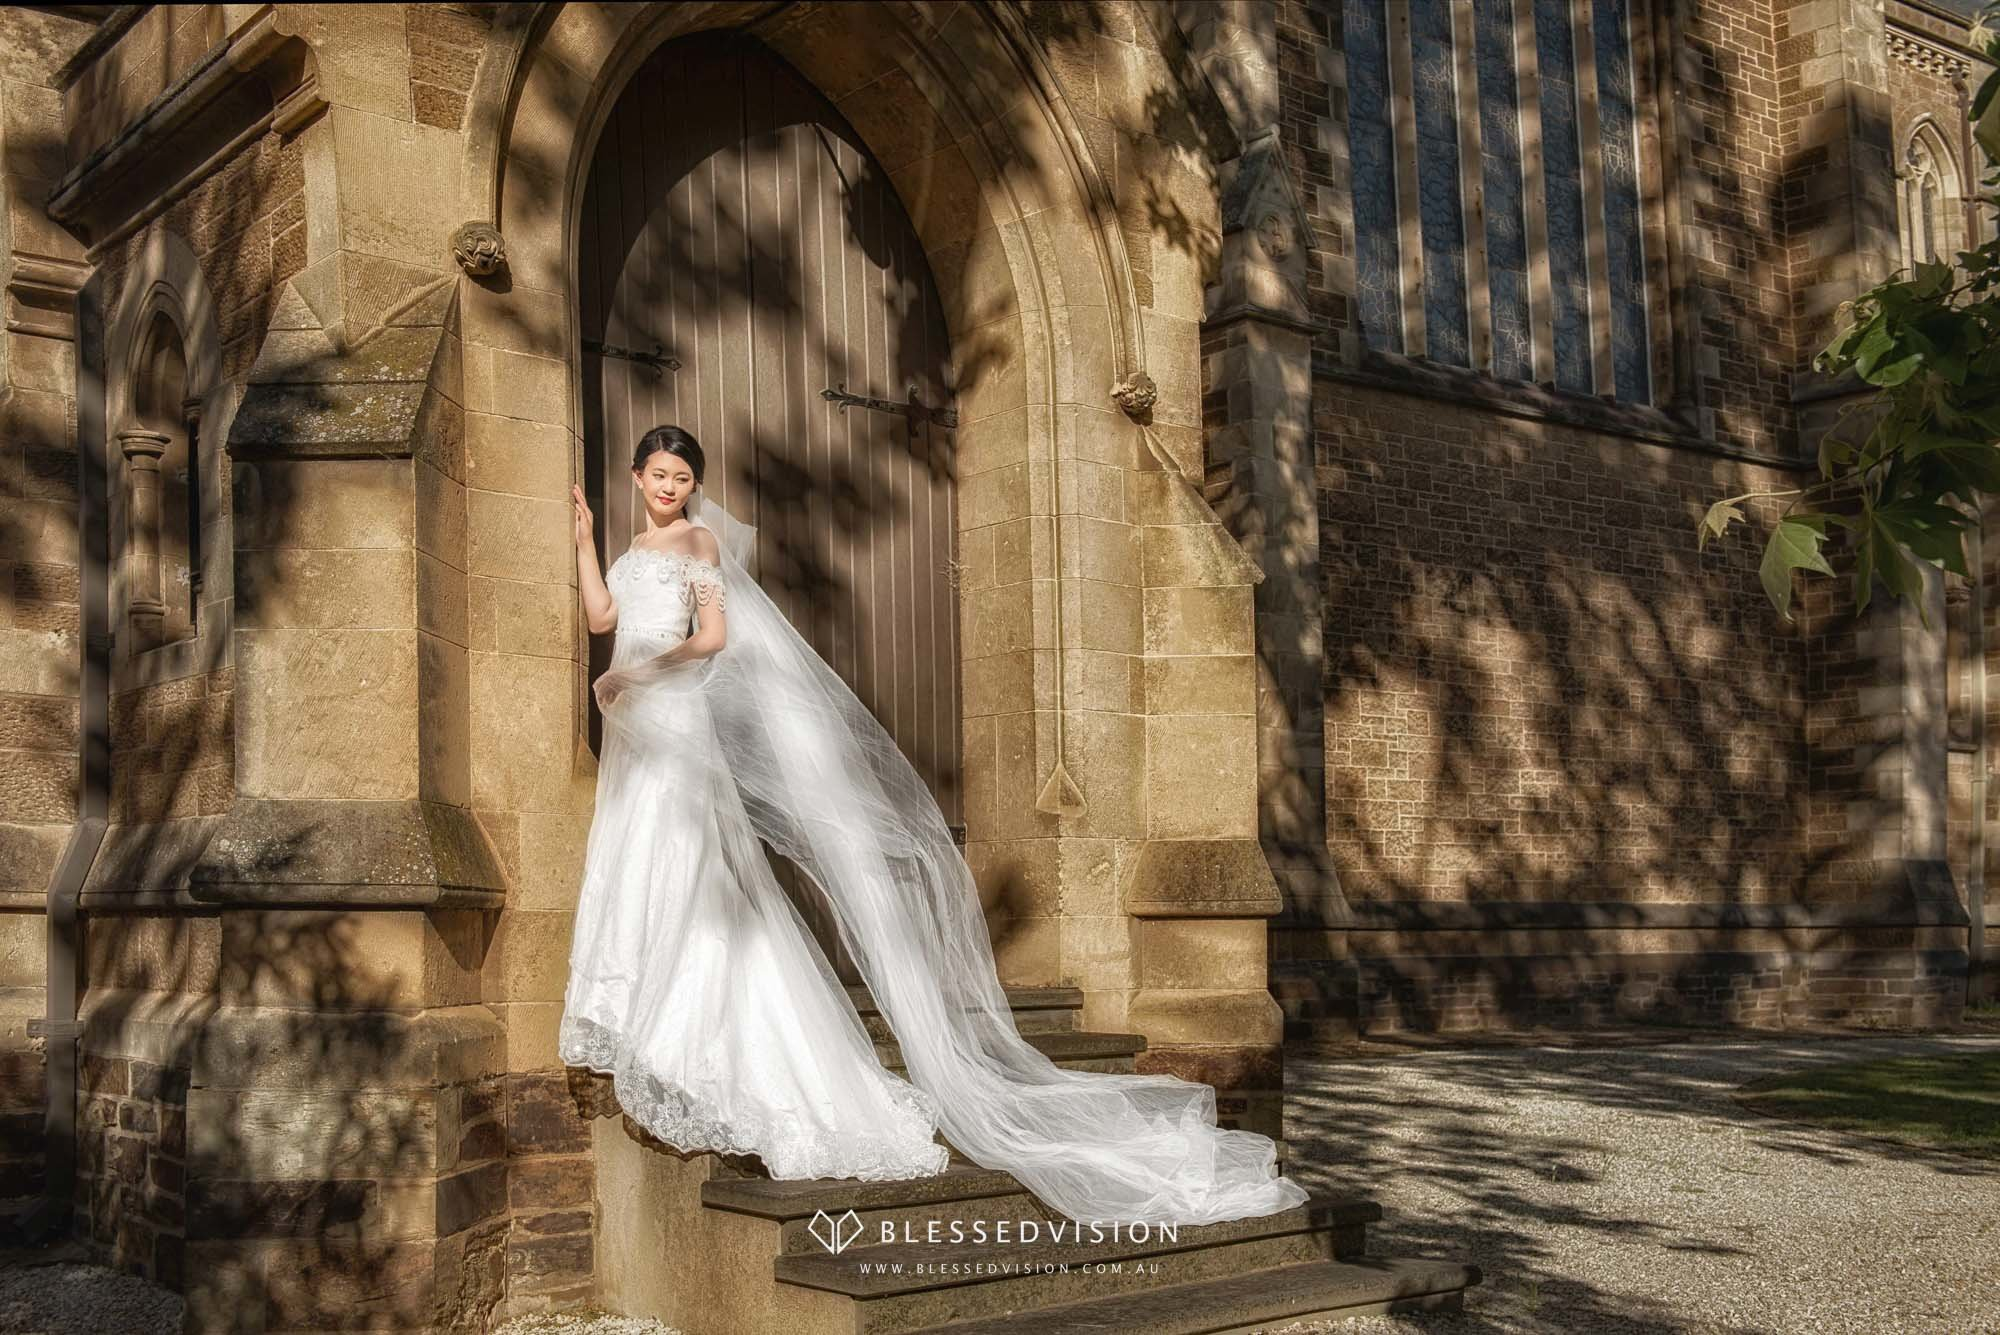 Blessed Wedding Photography: Adelaide Prewedding Photography Wedding Blessed Vision